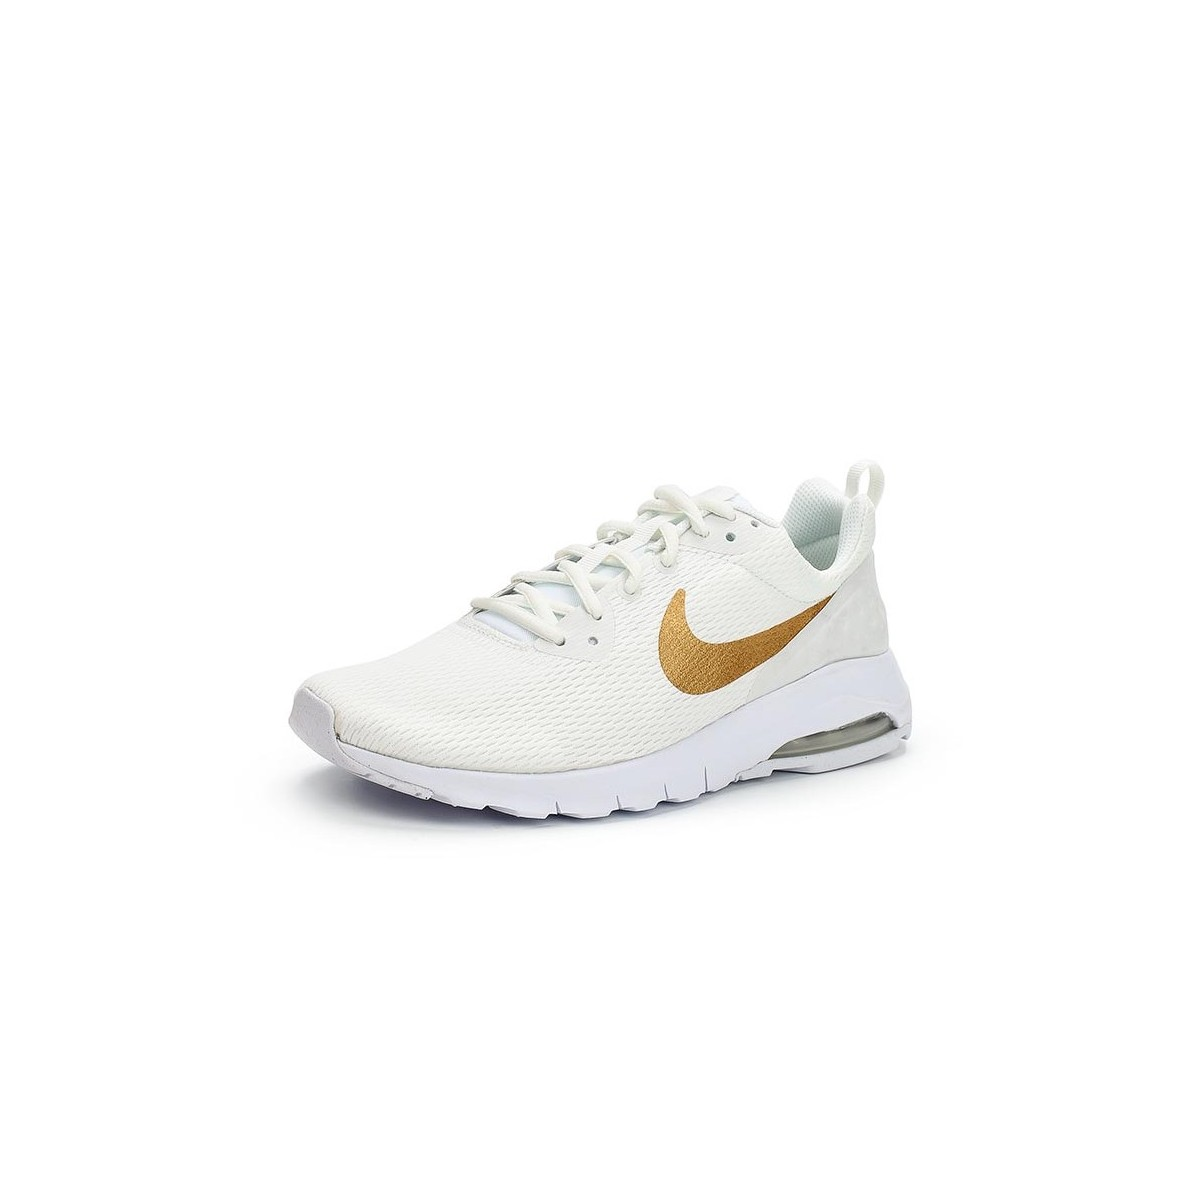 official photos 2c185 f93b2 ... Nike Air Max Motion LW Zapatillas Mujer 917650 100 Blancas ...